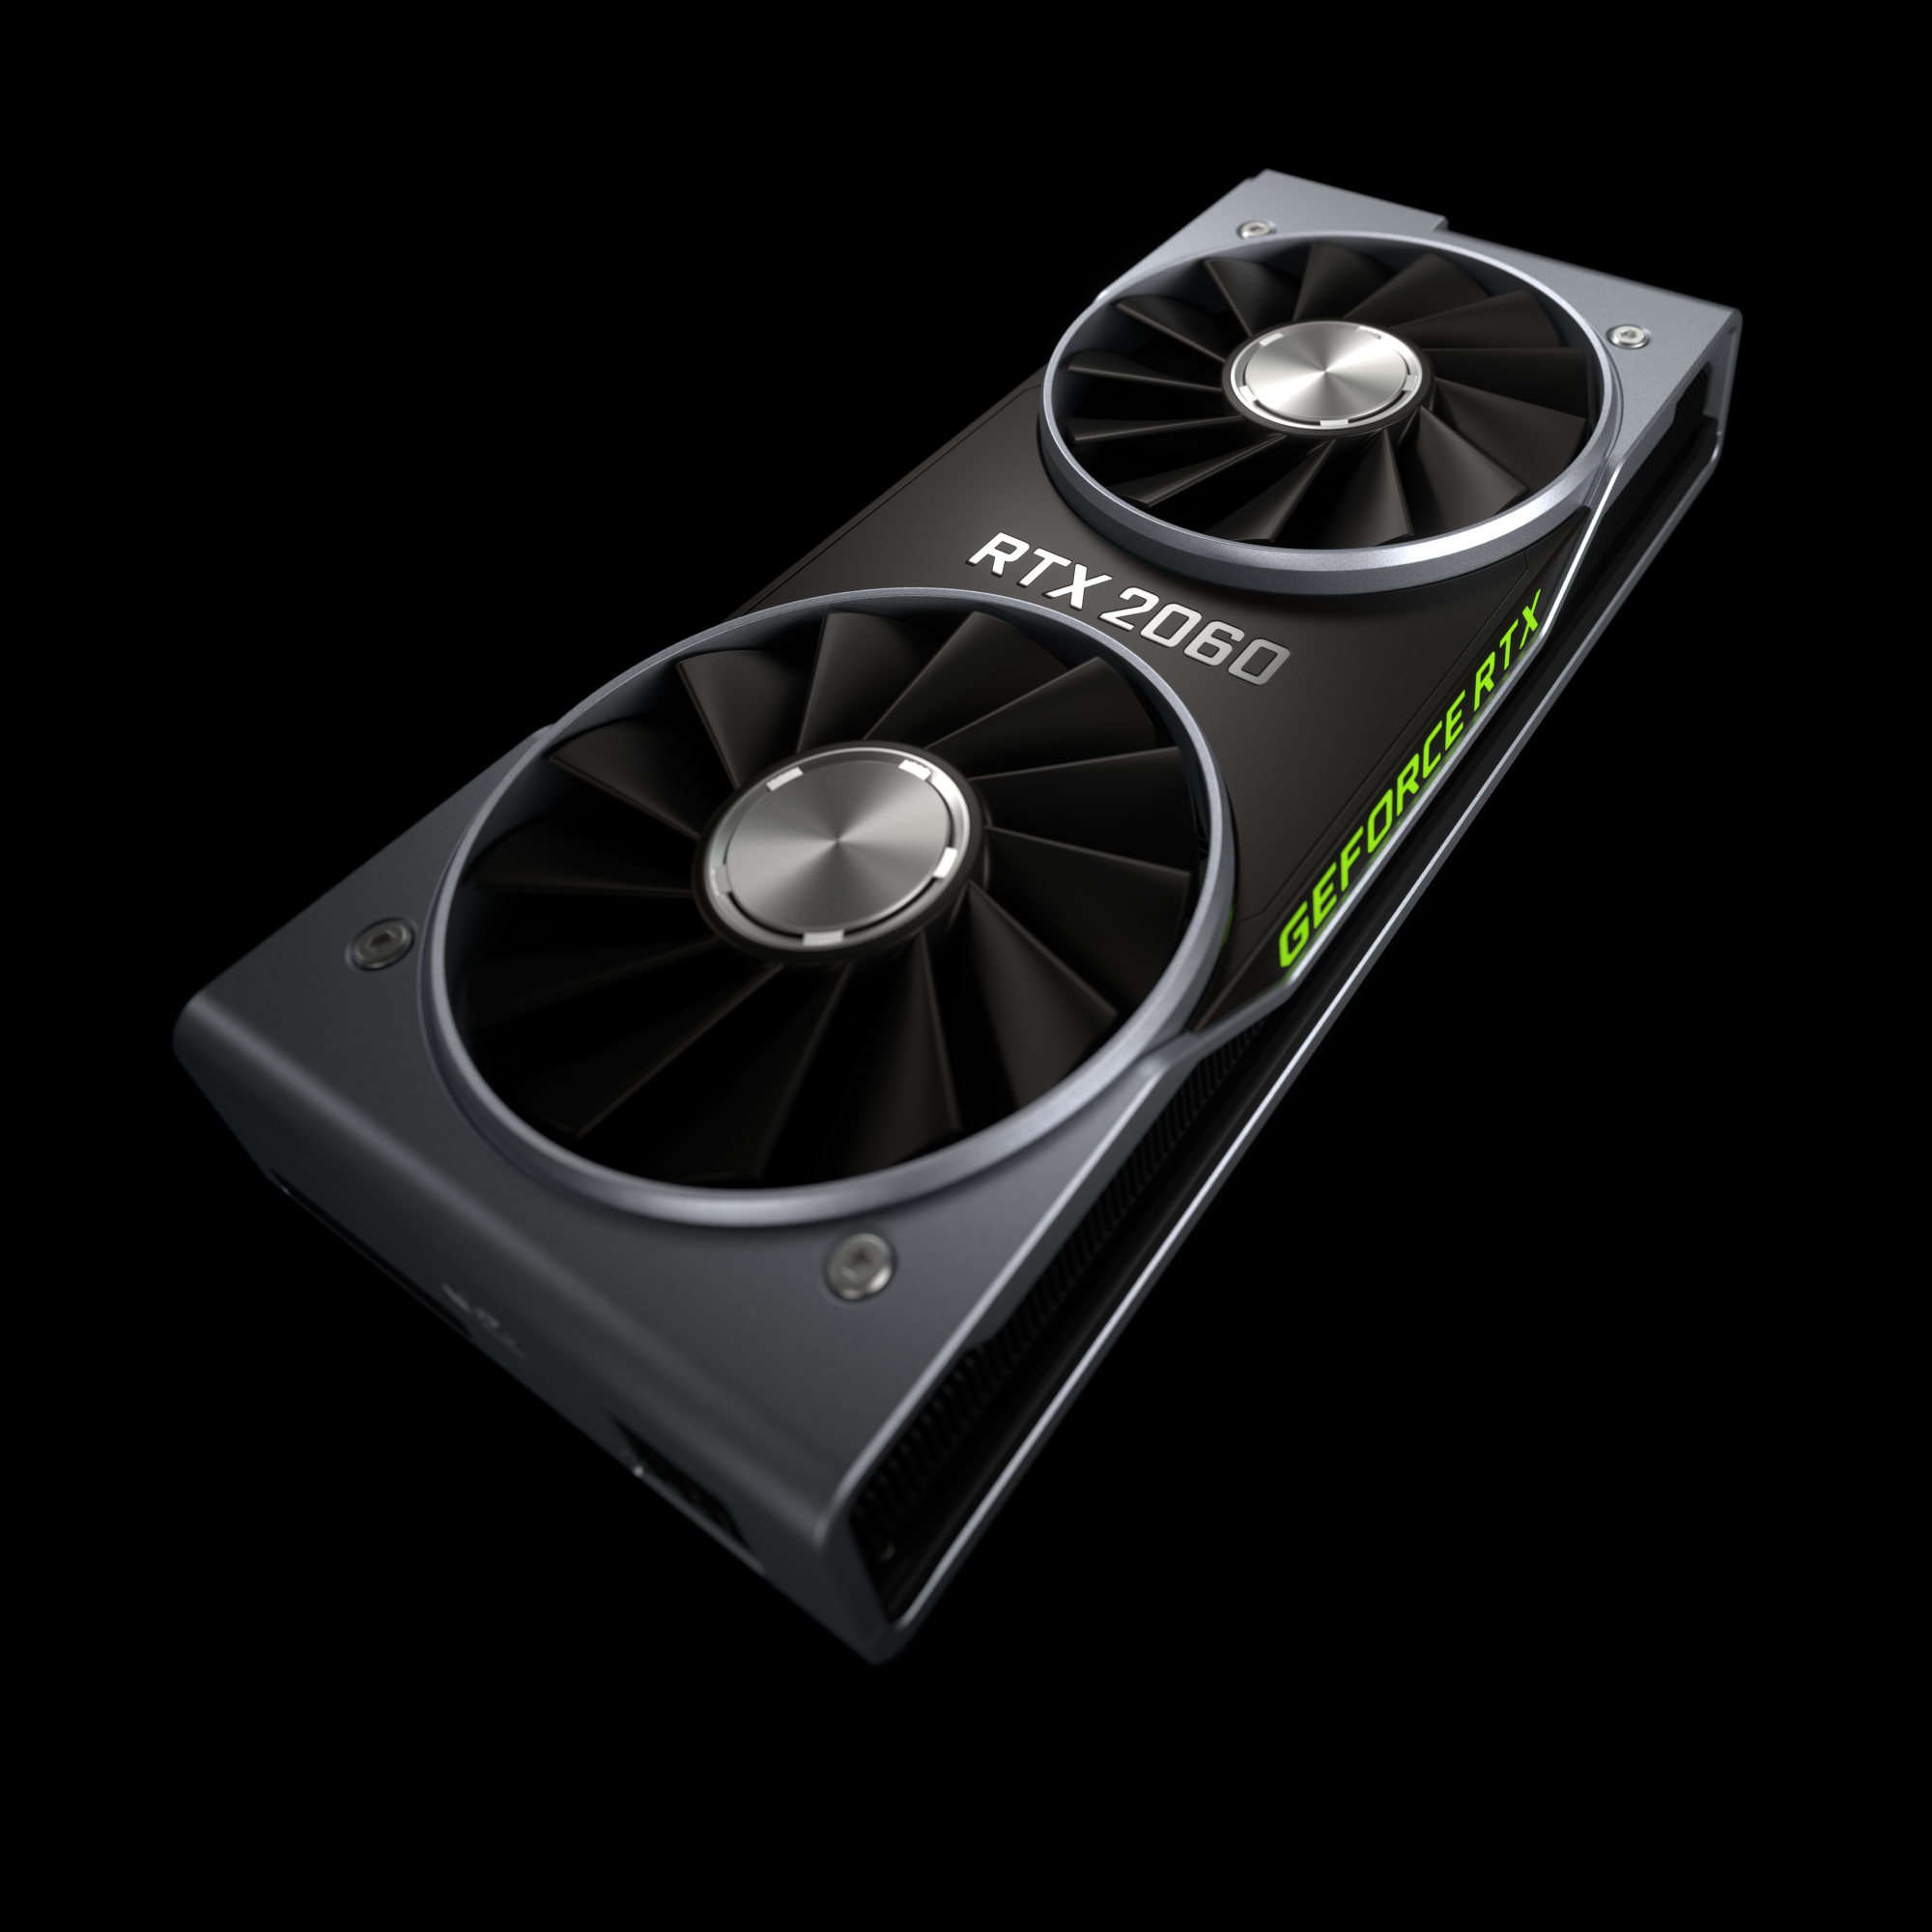 Nvidia GeForce RTX 2060 review: ray-tracing, DLSS and solid